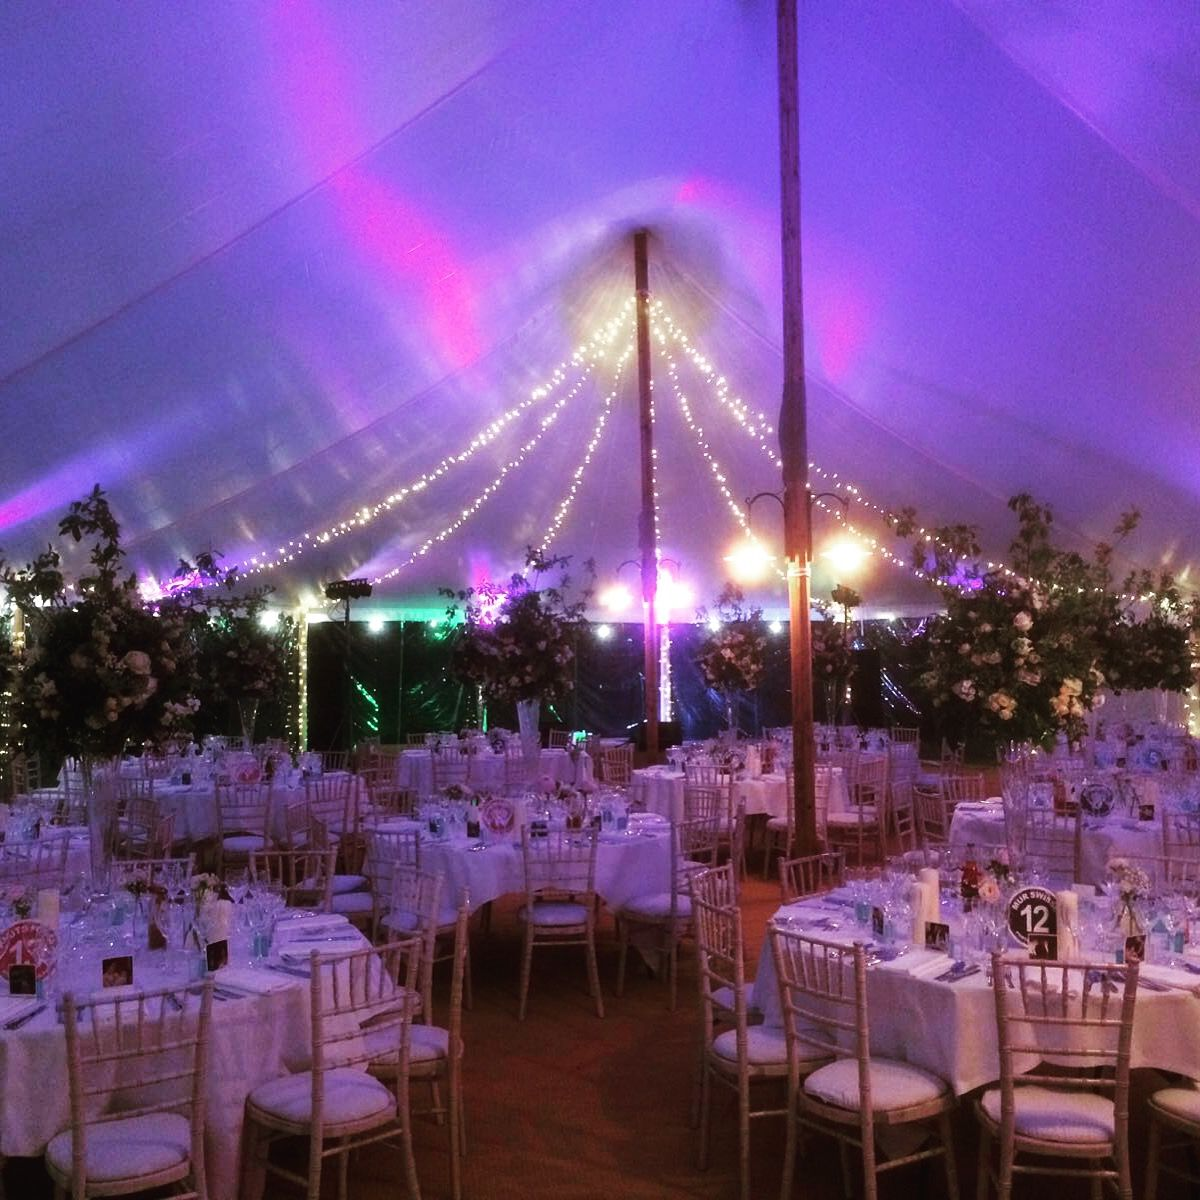 Wedding Altar Hire Uk: Sailcloth Tent Set For Wedding #wedding #marquee